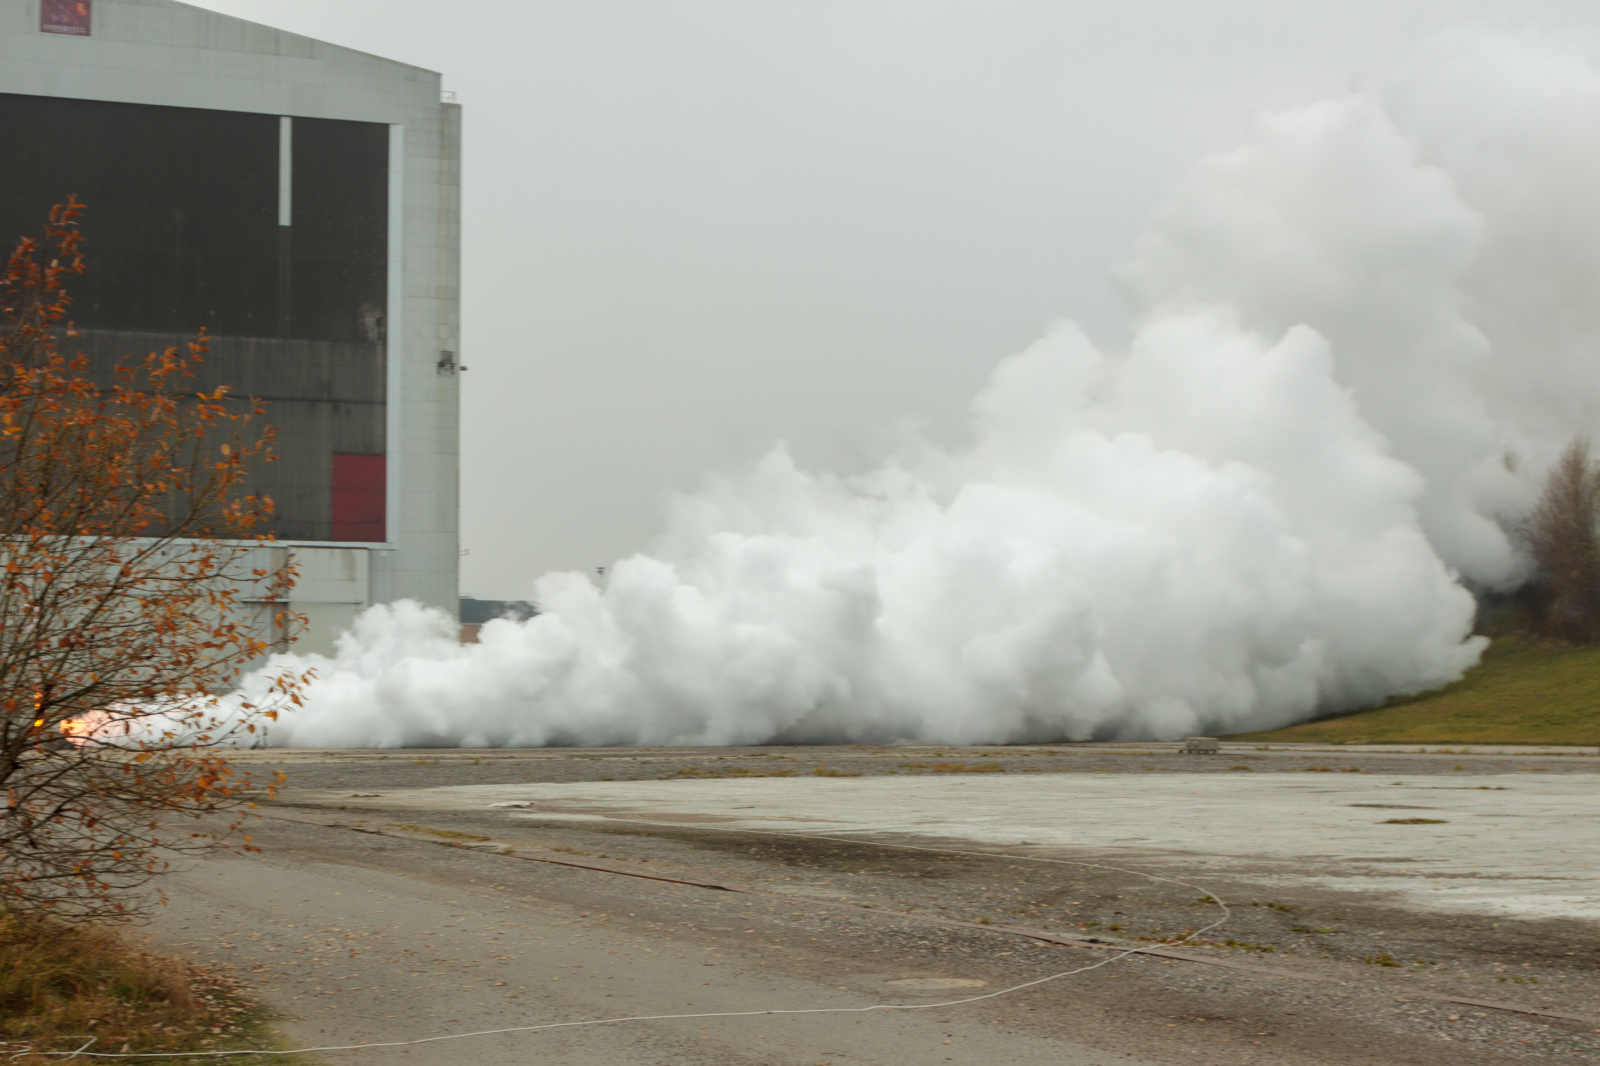 Horizontal static test of an engine from the HEAT-1X series 2010, the huge earth berm is to the right. Foto: Copenhagen Suborbitals